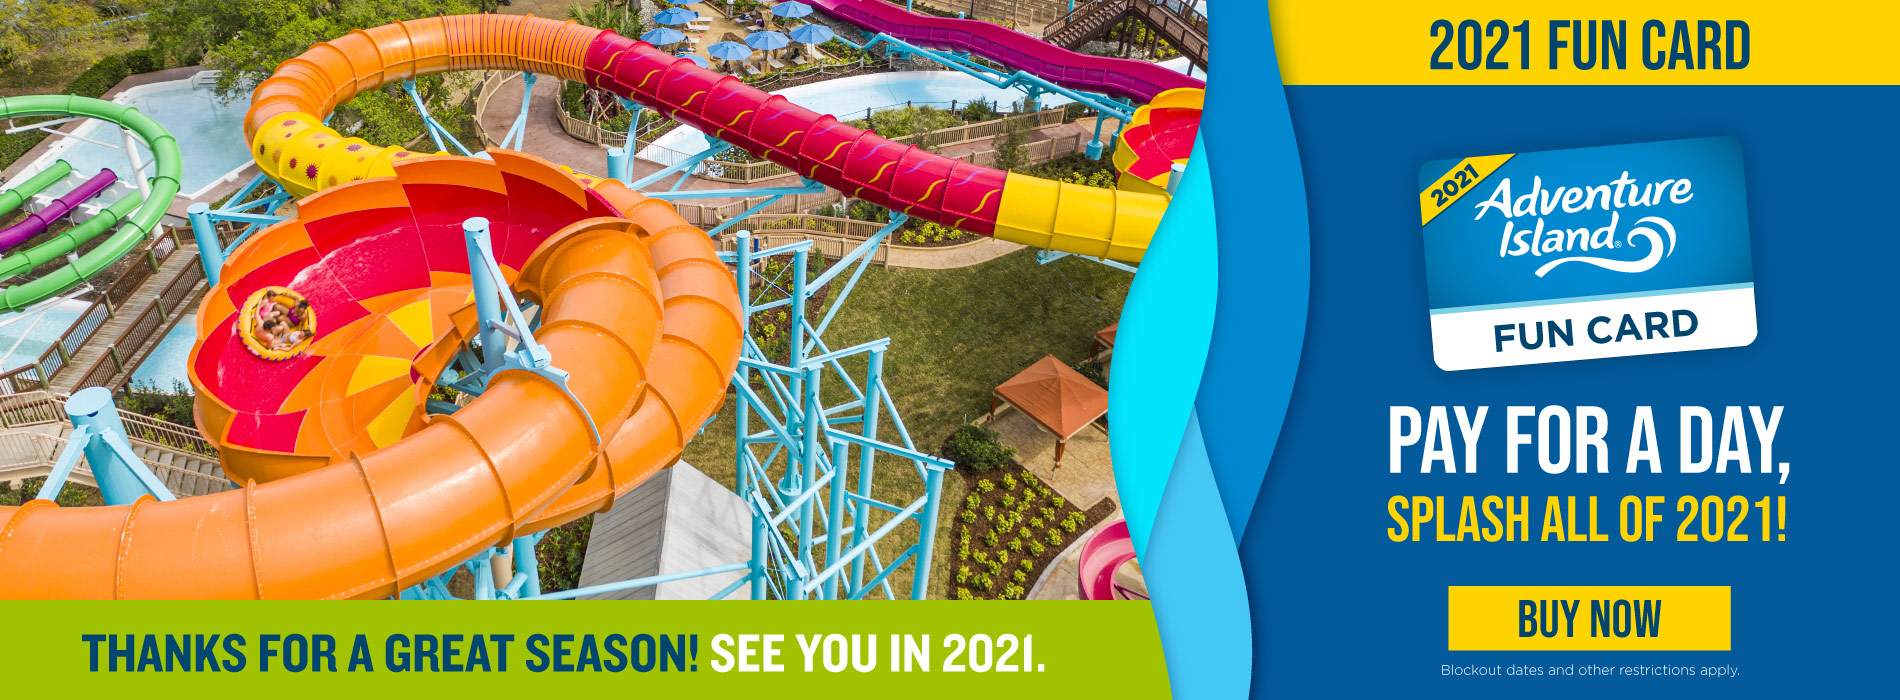 Pay for a Day, Splash all of 2021 with a Fun Card!